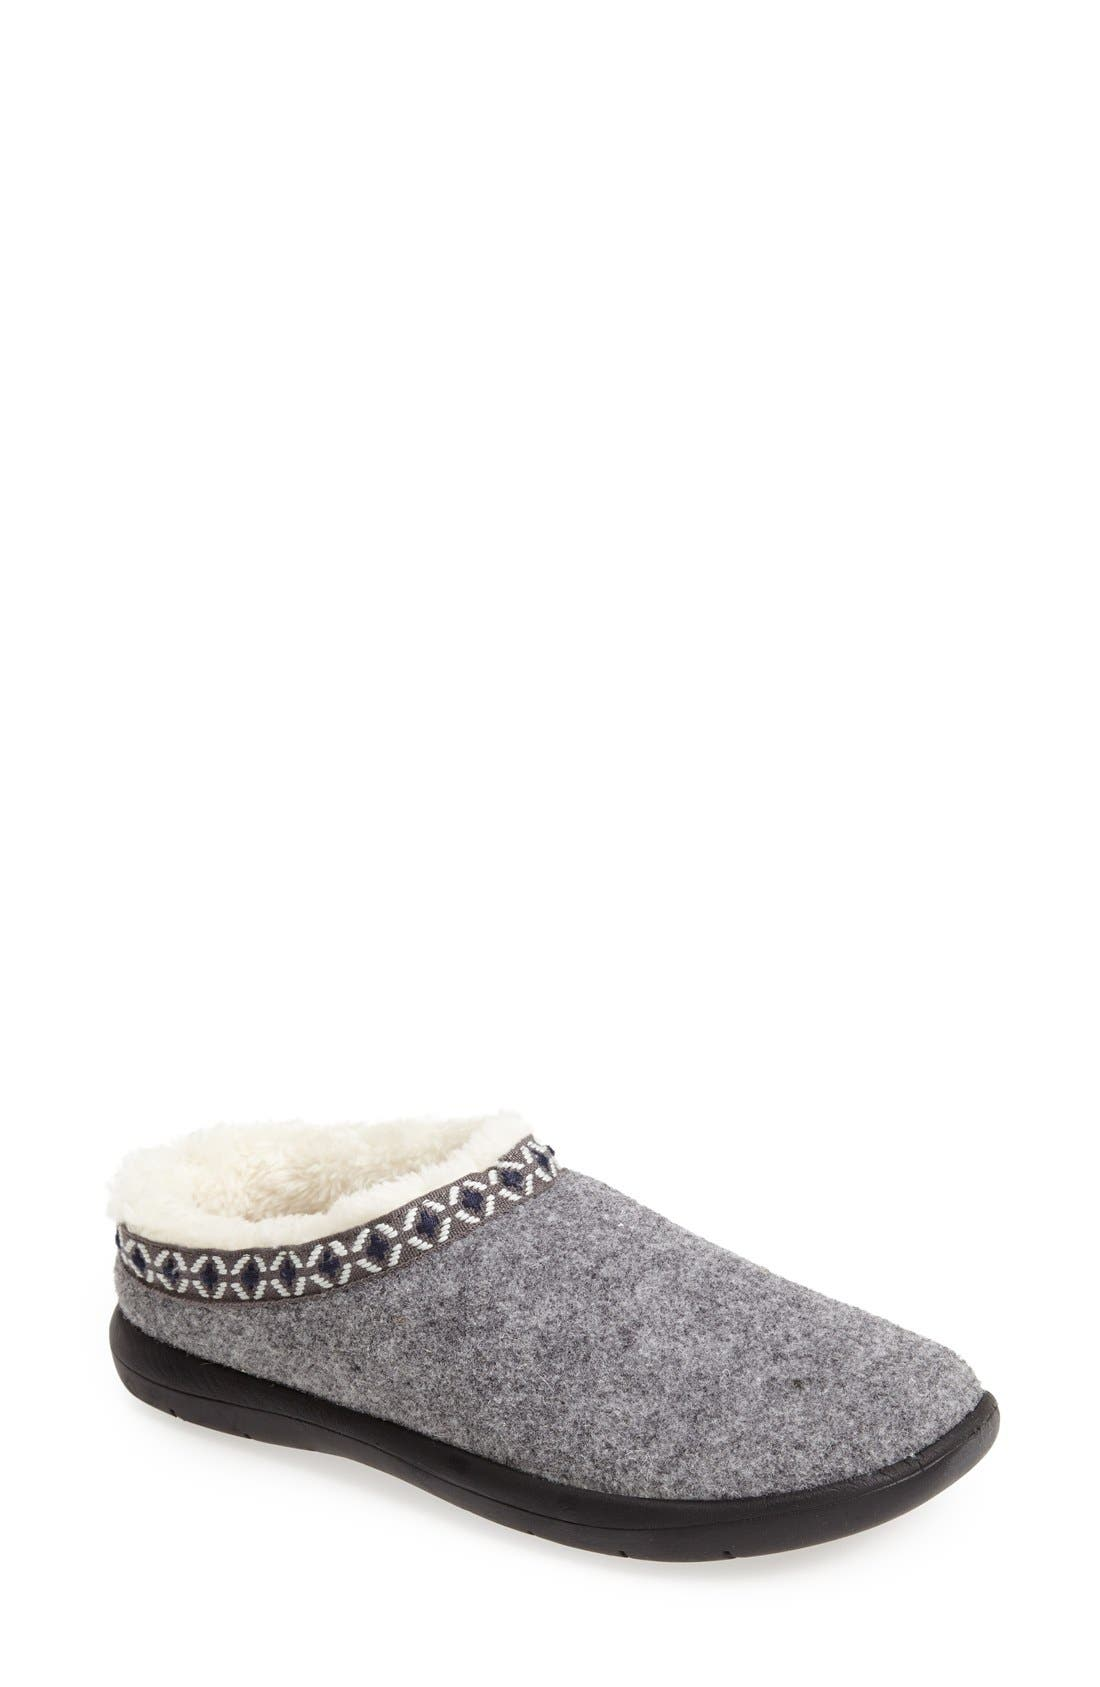 Alternate Image 1 Selected - Tempur-Pedic® 'Subartic' Slipper (Women)